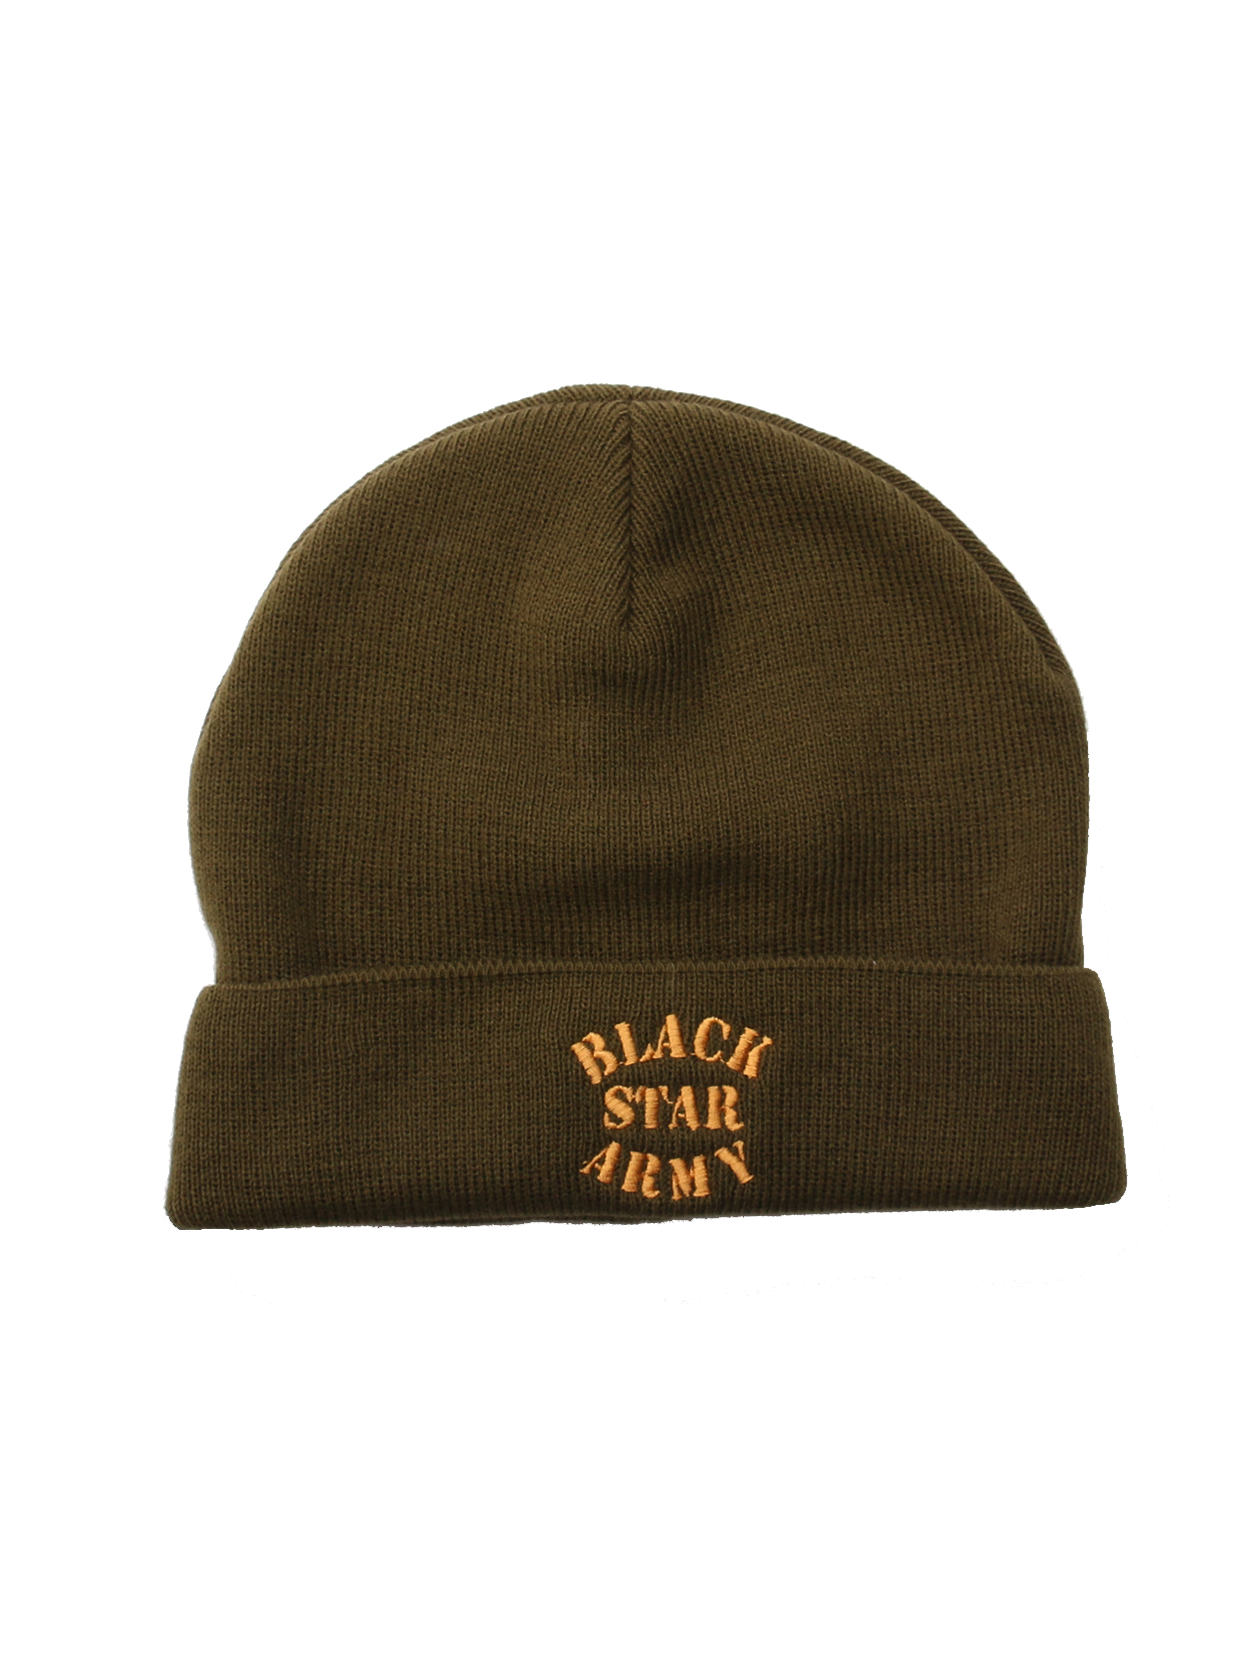 Unisex beanie Black Star Army